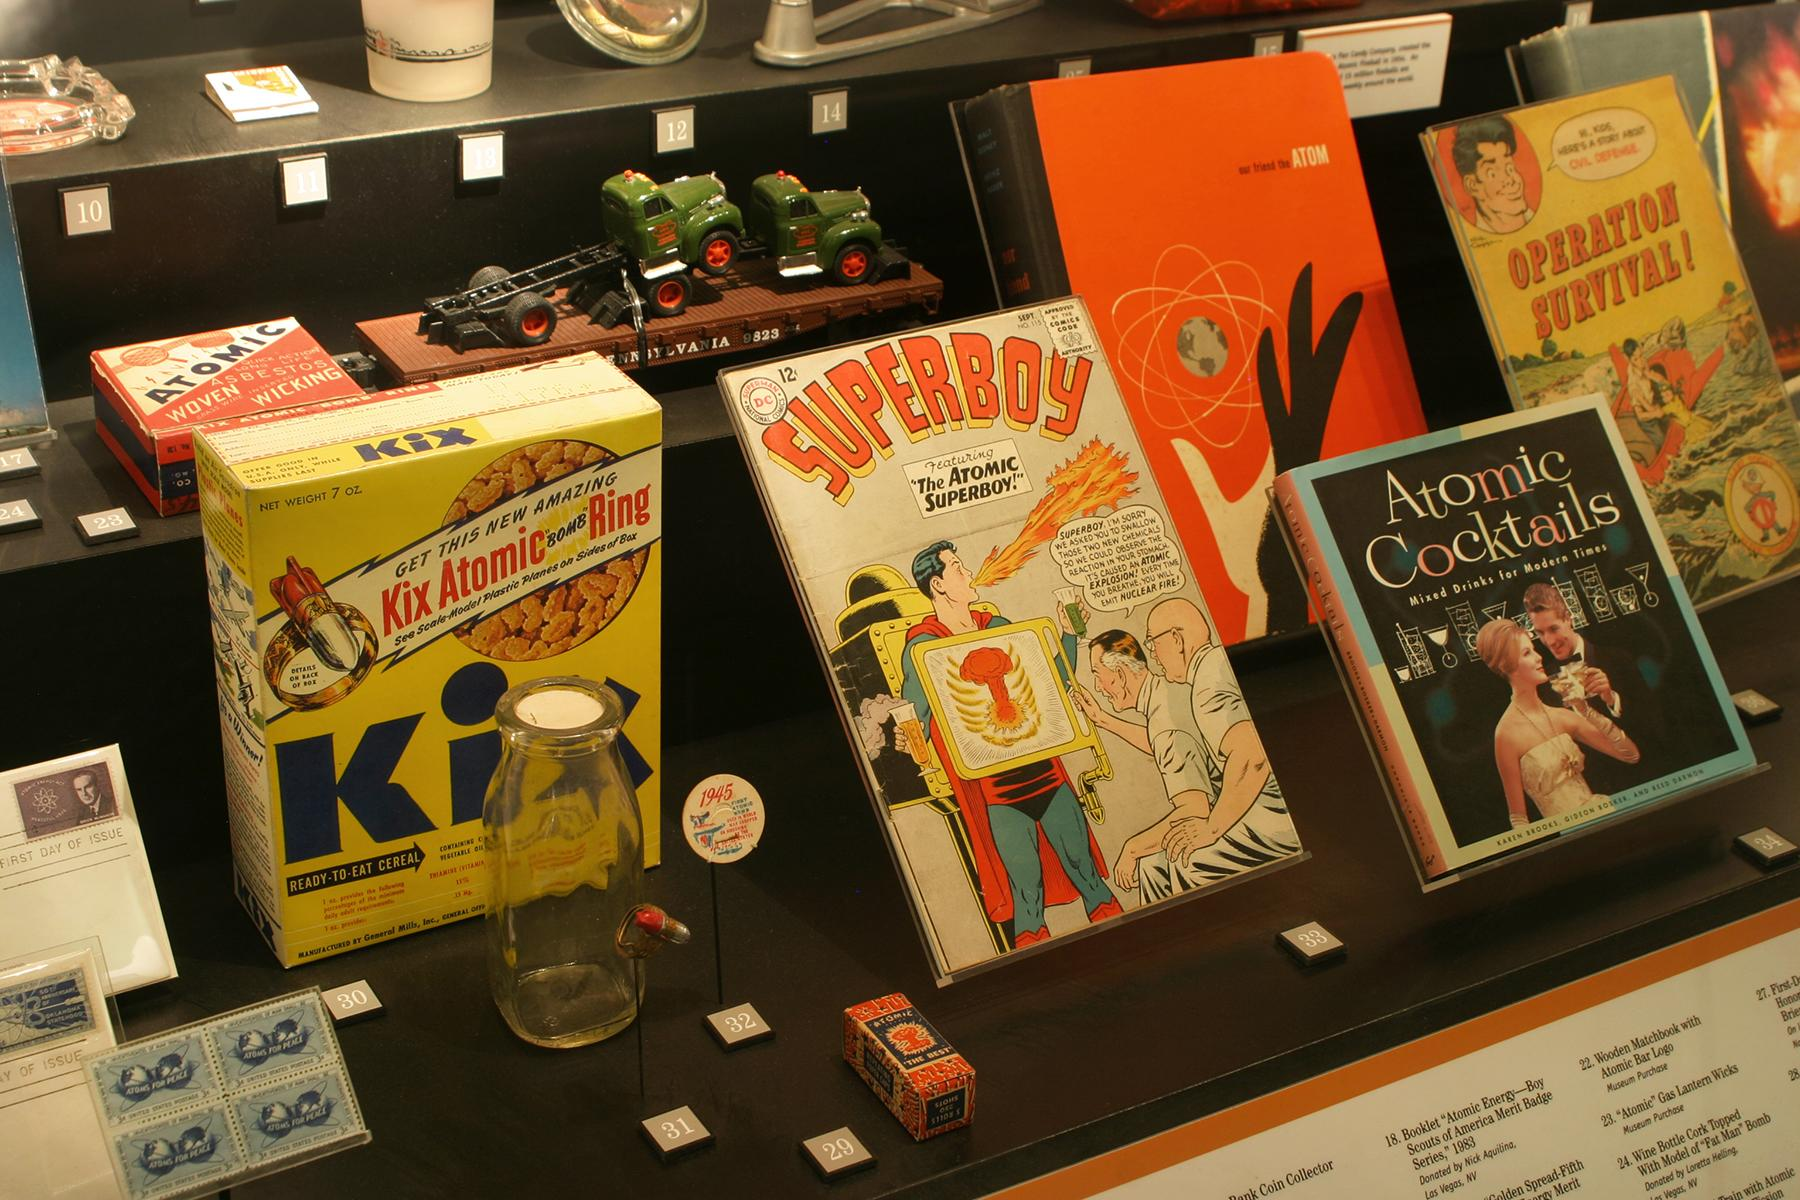 These Weird Museums In Las Vegas Are Full Of Culture And History